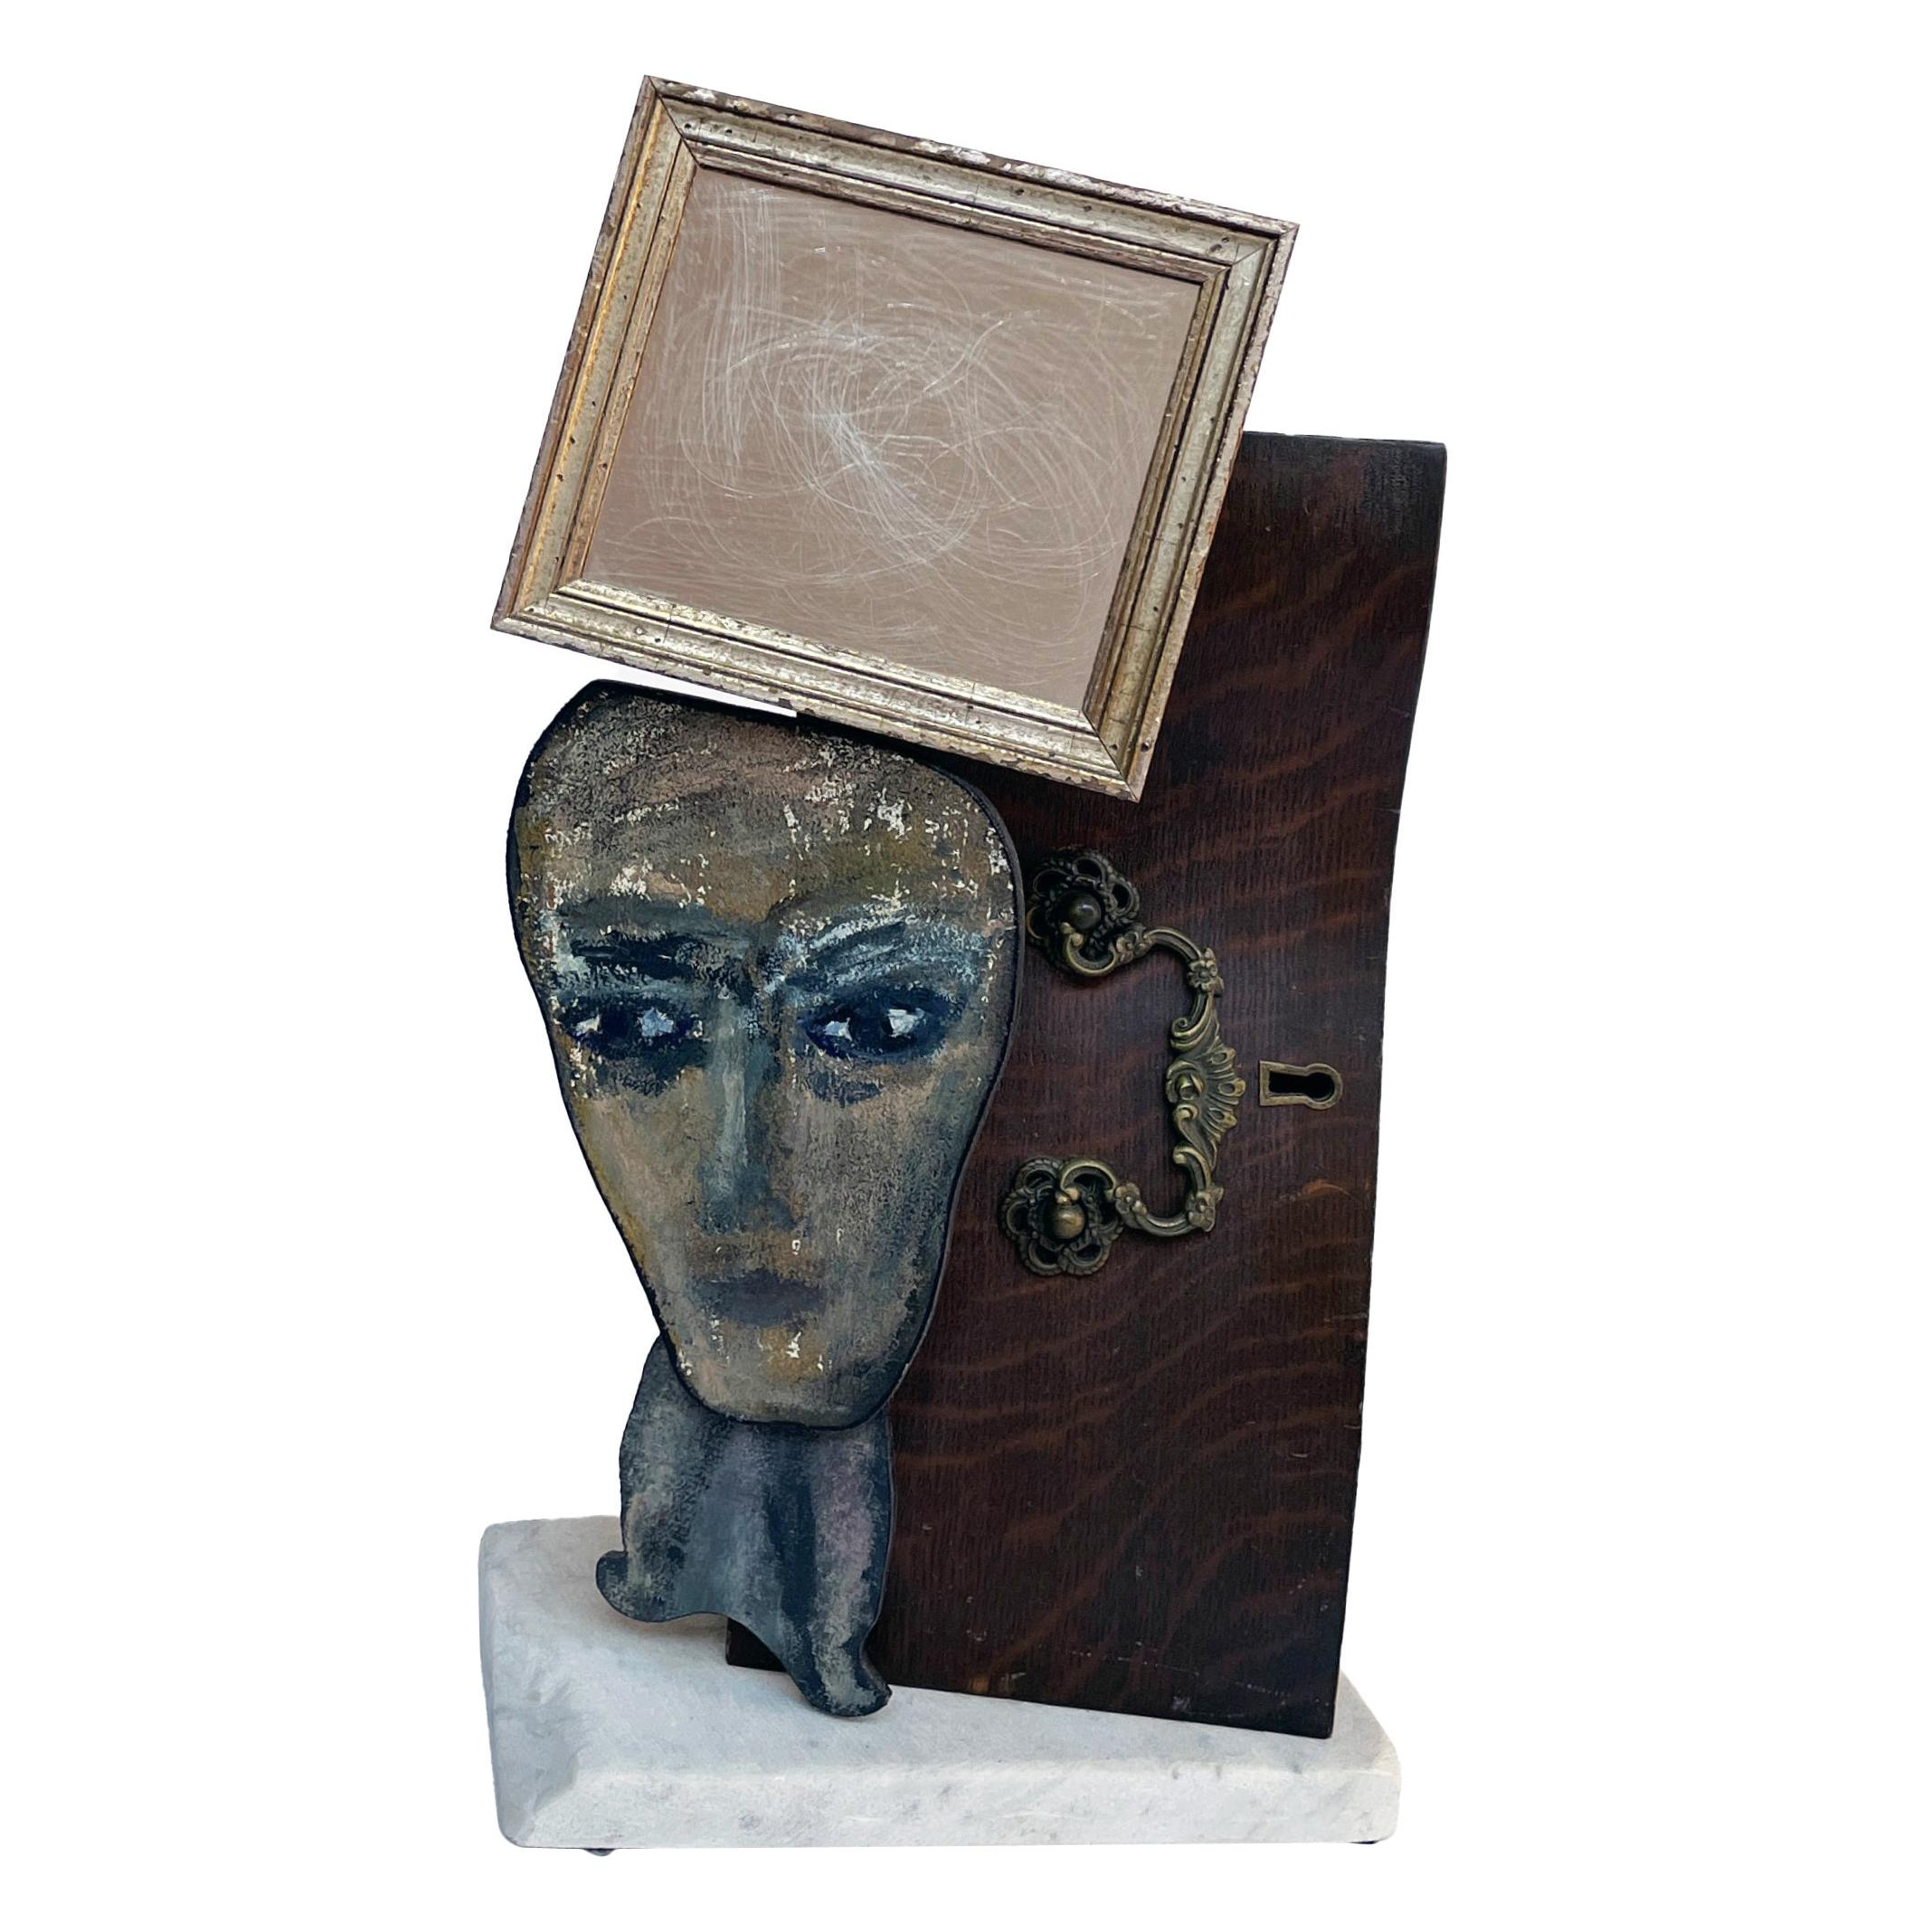 Vanity Mirror Sculptural Construction with Sculpture Found Objects and Portrait